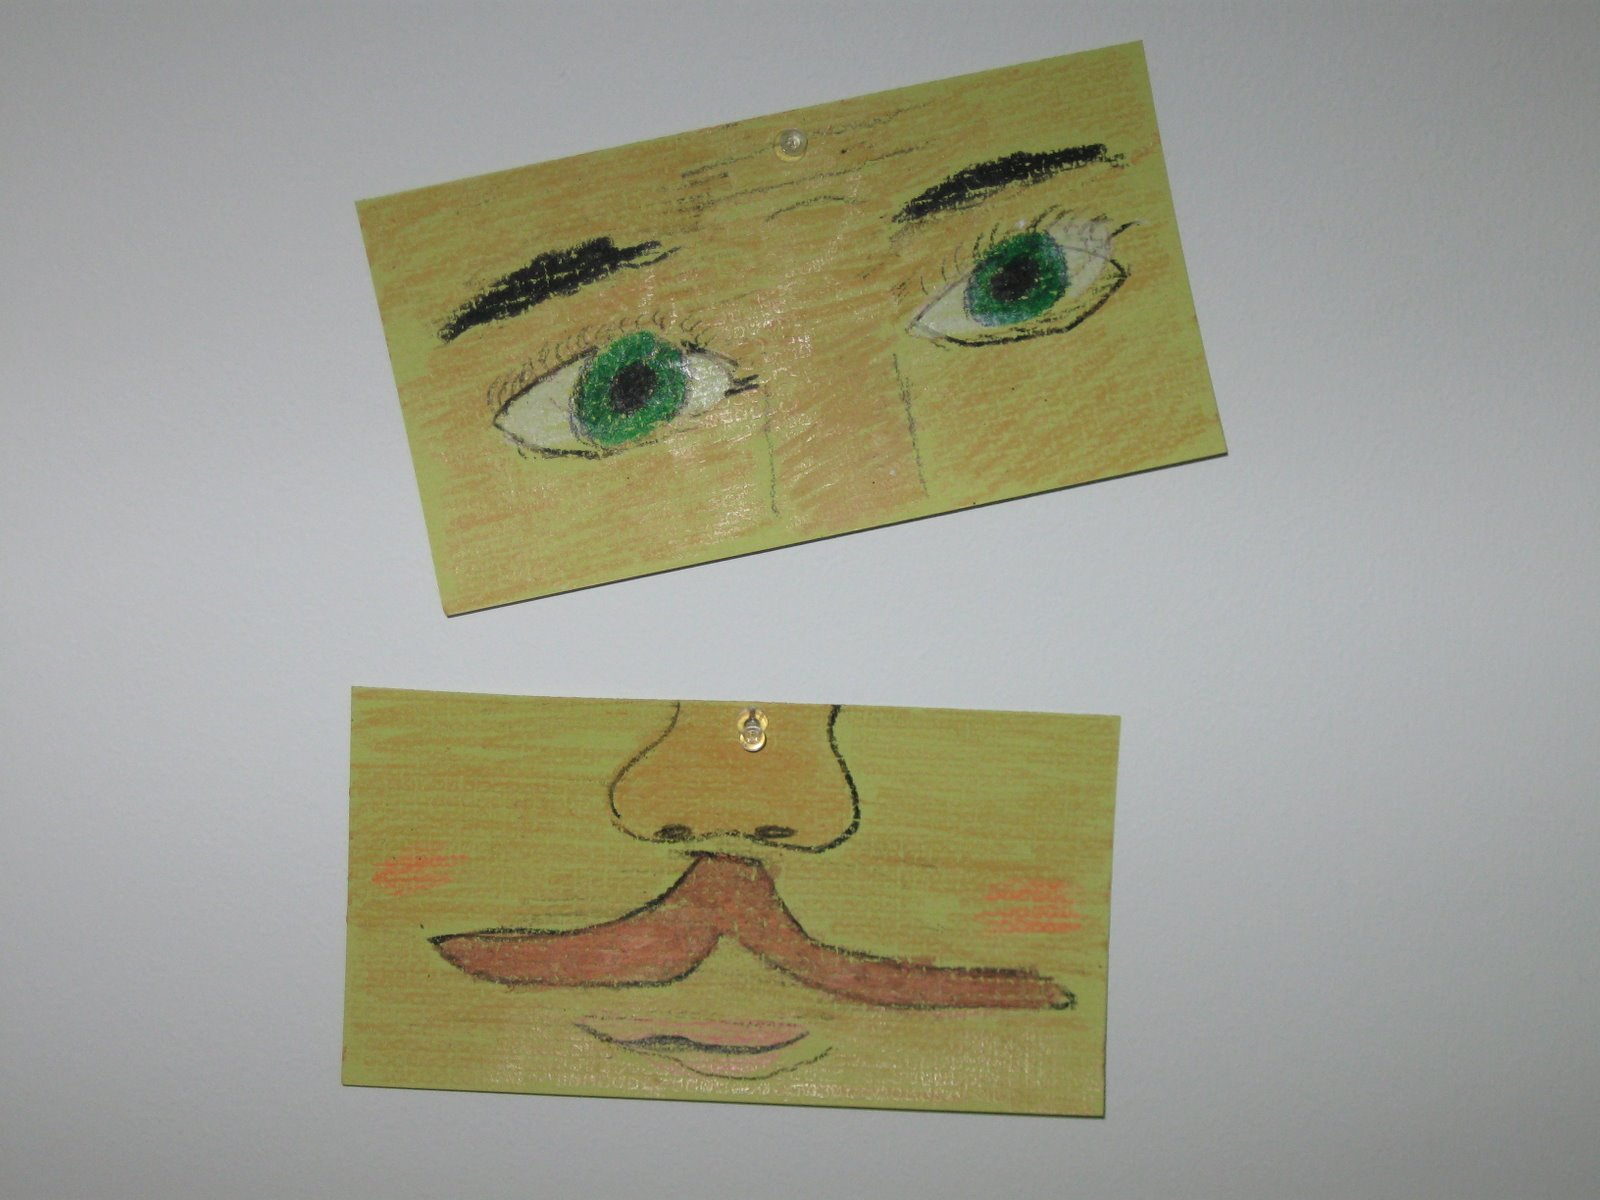 Portrait of a mustache by Paul Klinger in the Fall of 2008